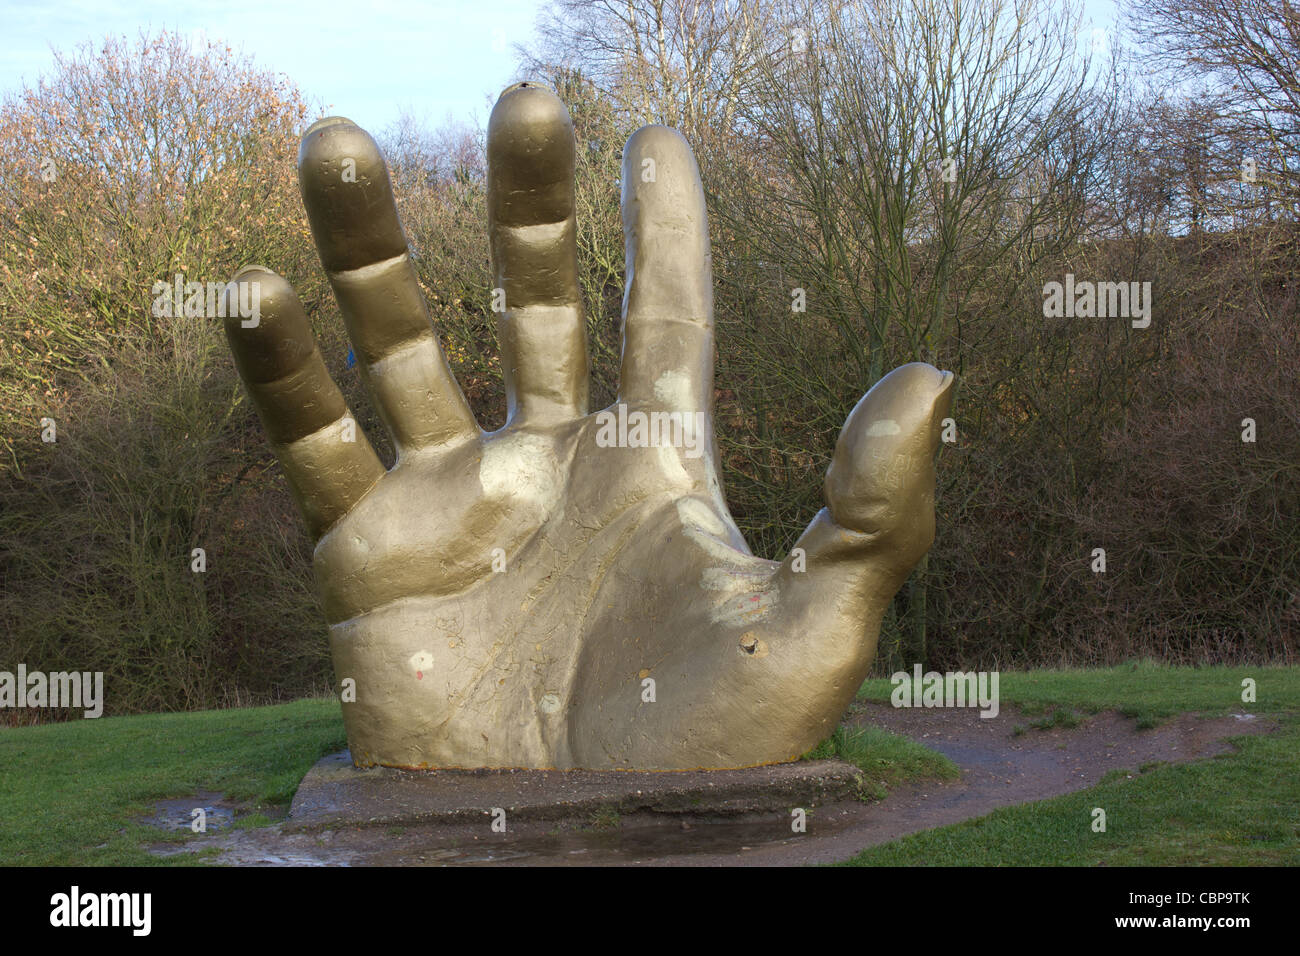 Golden hand sculpture at vicar water country park - Stock Image